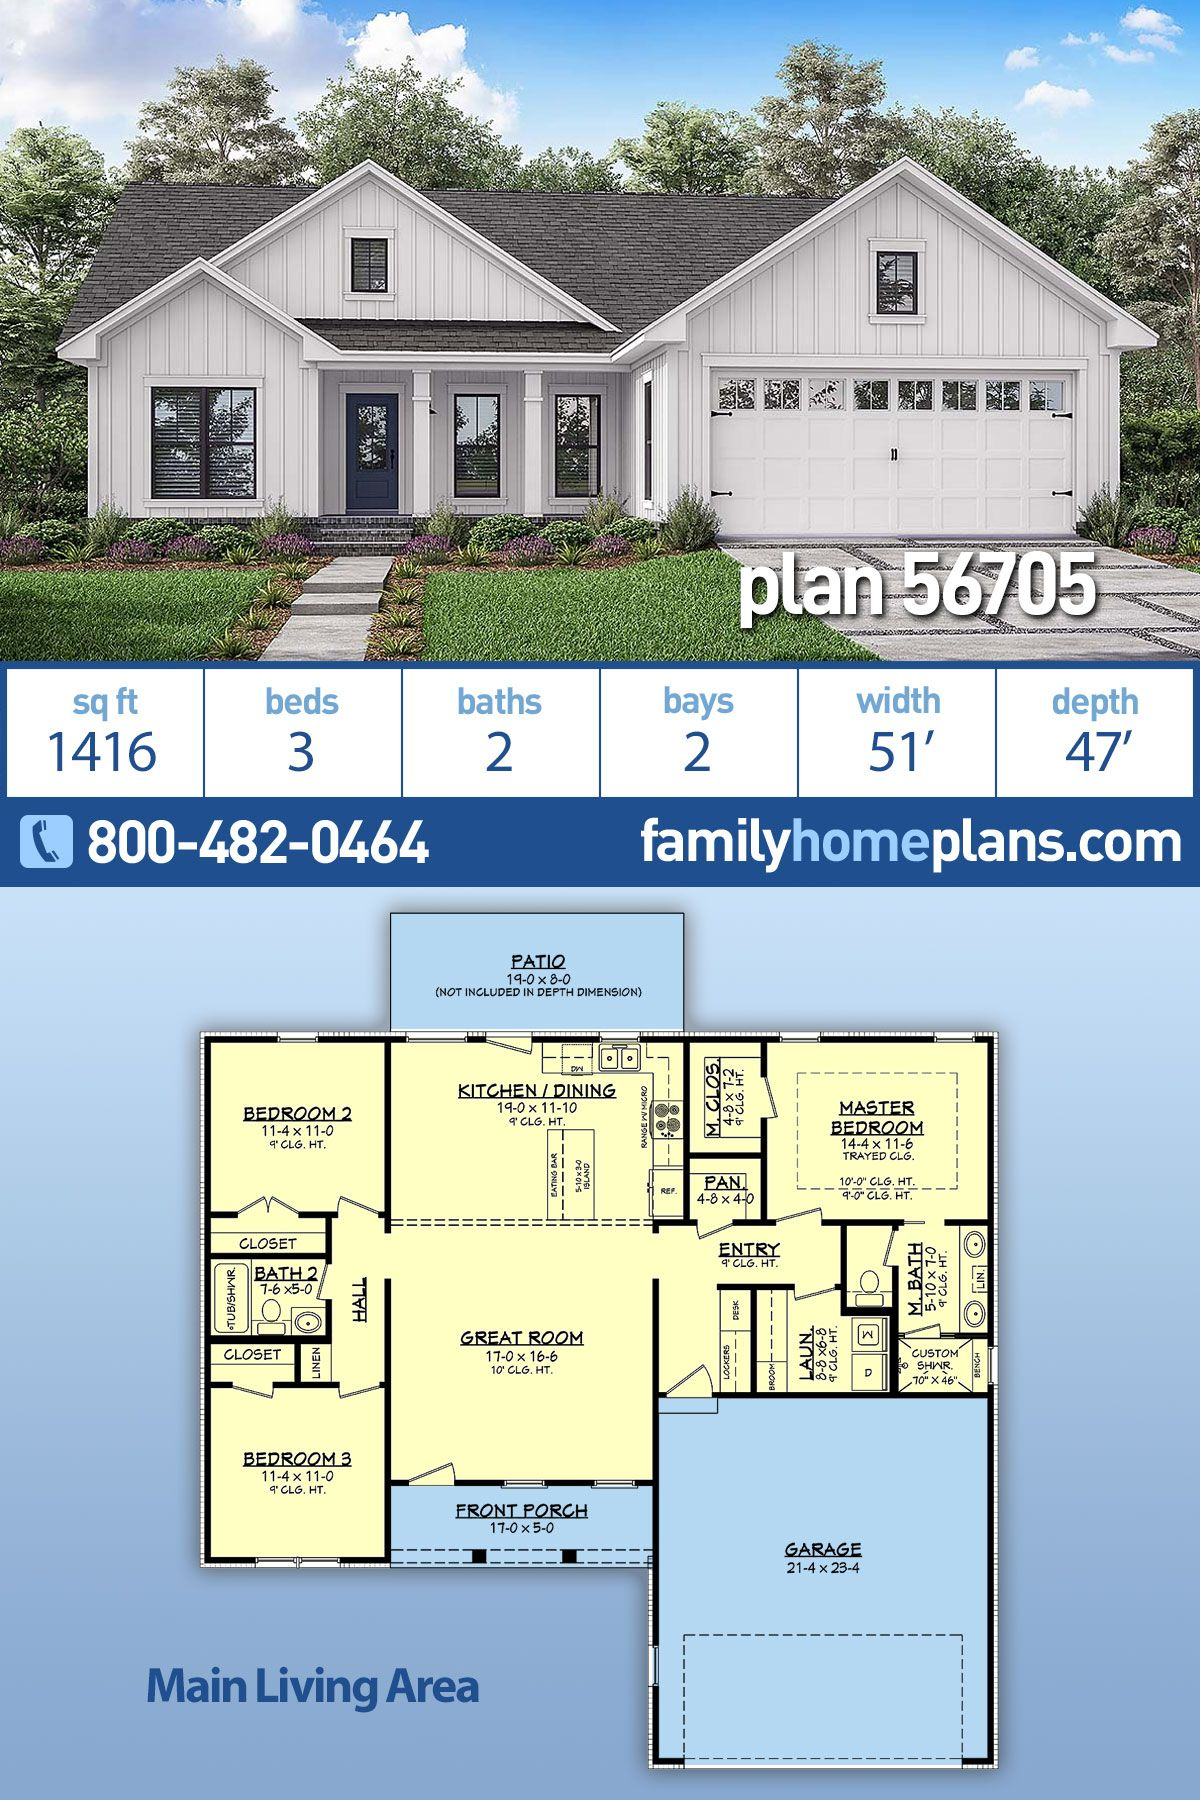 Traditional Style House Plan 56705 with 3 Bed, 2 Bath, 2 Car Garage is part of Country house plan, Family house plans, New house plans, Ranch house plans, House plan with loft, Basement house plans - House Plan 56705  Country, Farmhouse, Traditional Style House Plan with 1416 Sq Ft, 3 Bed, 2 Bath, 2 Car Garage